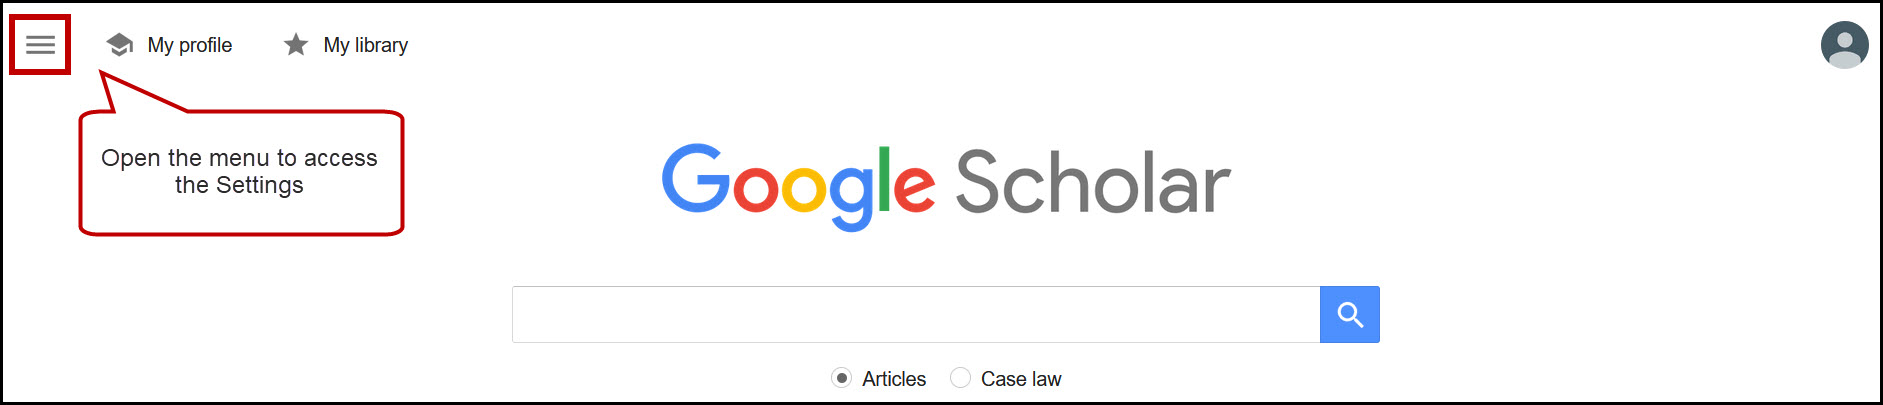 Google Scholar home page with main menu icon circled.